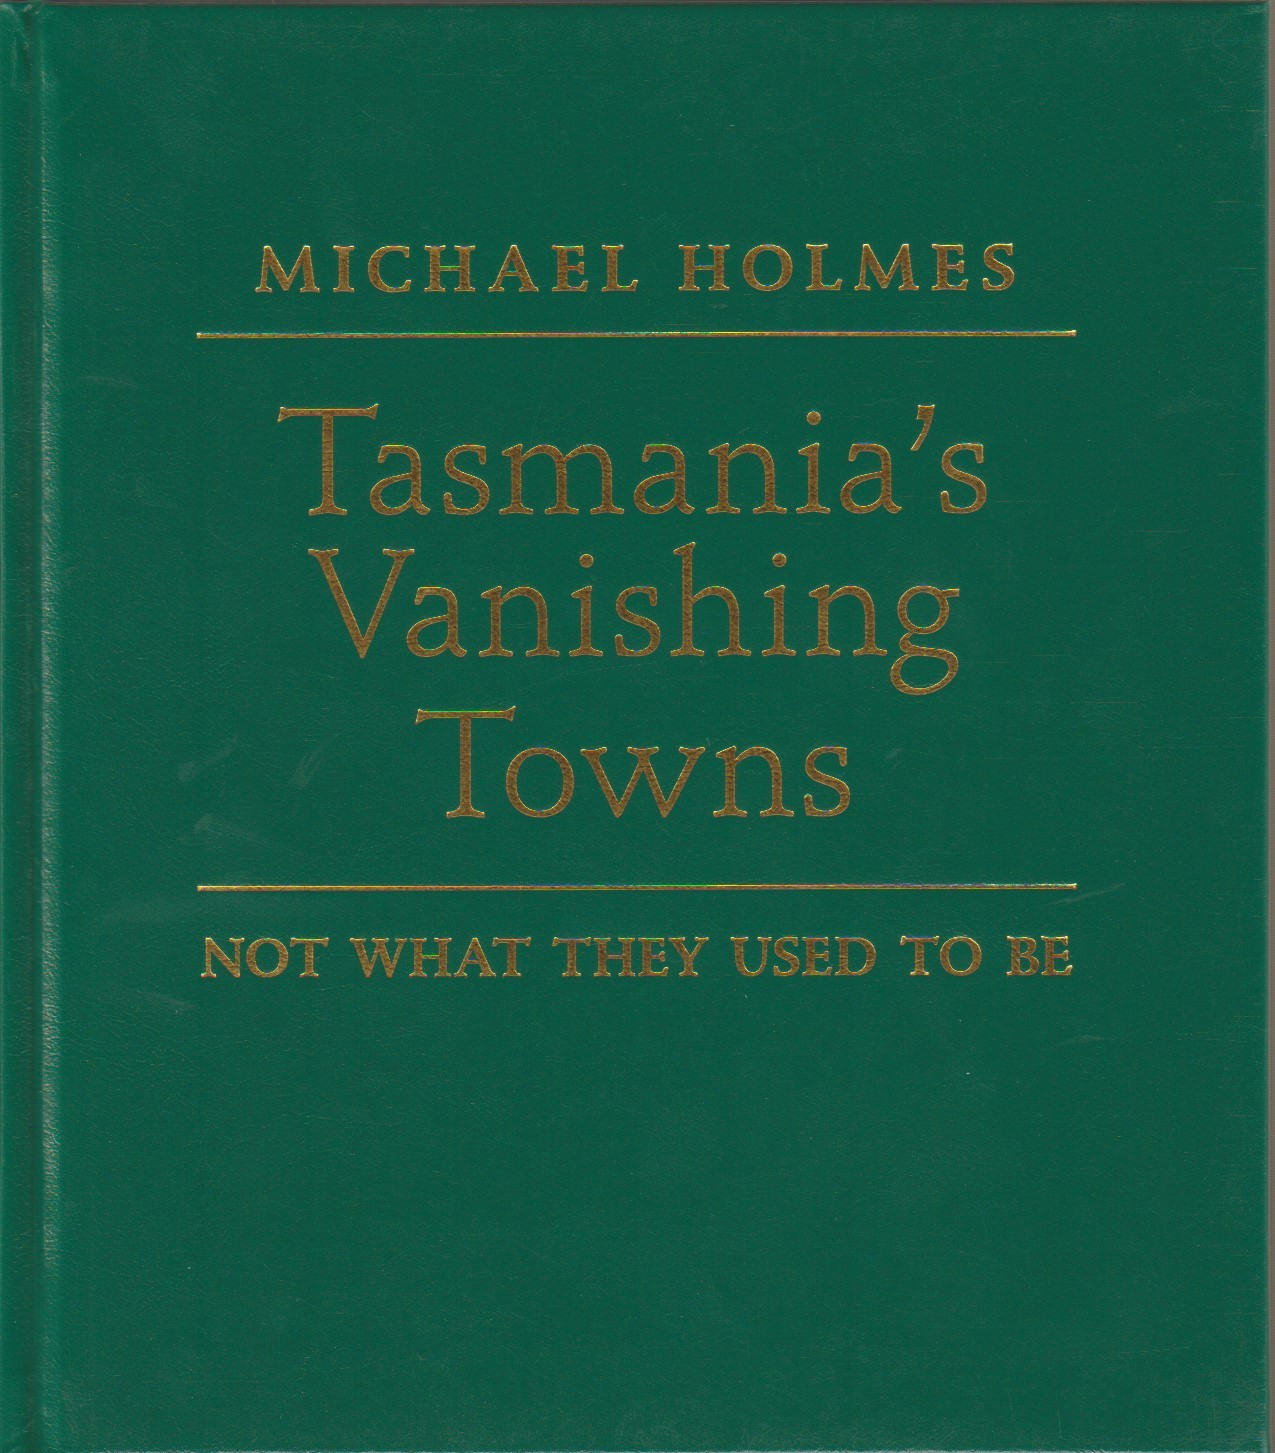 Tasmania's Vanishing Towns - Not what they used to be: Limited edition, numbered, signed